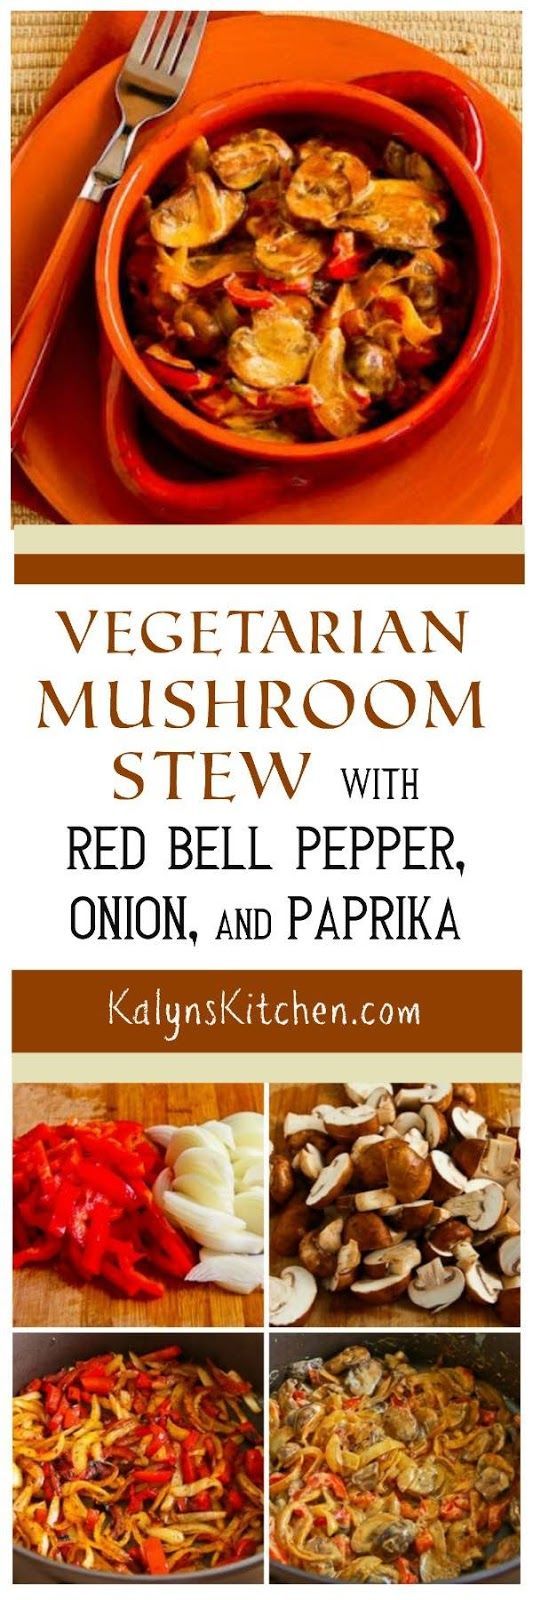 Vegetarian Mushroom Stew with Red Bell Pepper, Onion, and Paprika; this is actually a quick-cooking stovetop dish, but it feels like a stew, and it's delicious for a vegetarian meal that's low-carb, Keto, low-glycemic, gluten-free, and South Beach Diet friendly. [found on KalynsKitchen.com] #VegetarianStew #LowCarbVegetarianStew #LowCarbMushroomStew